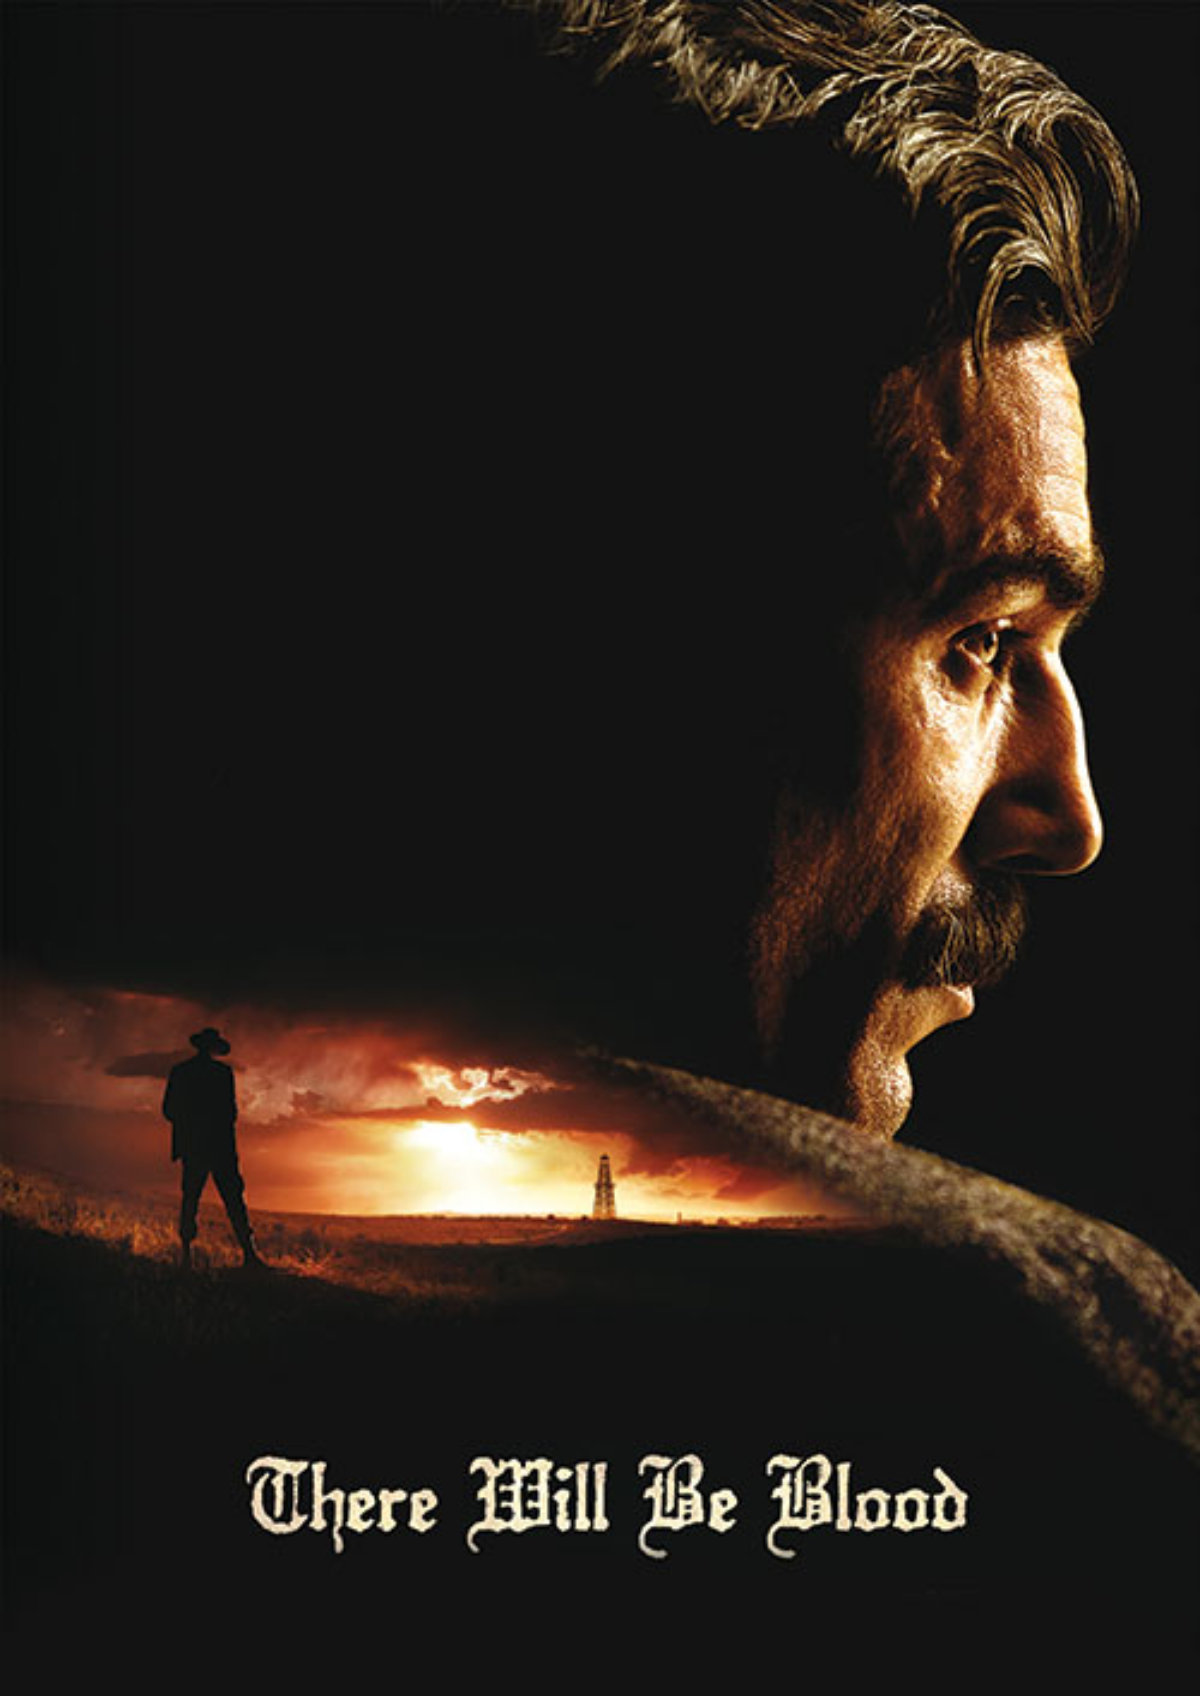 'There Will Be Blood' movie poster